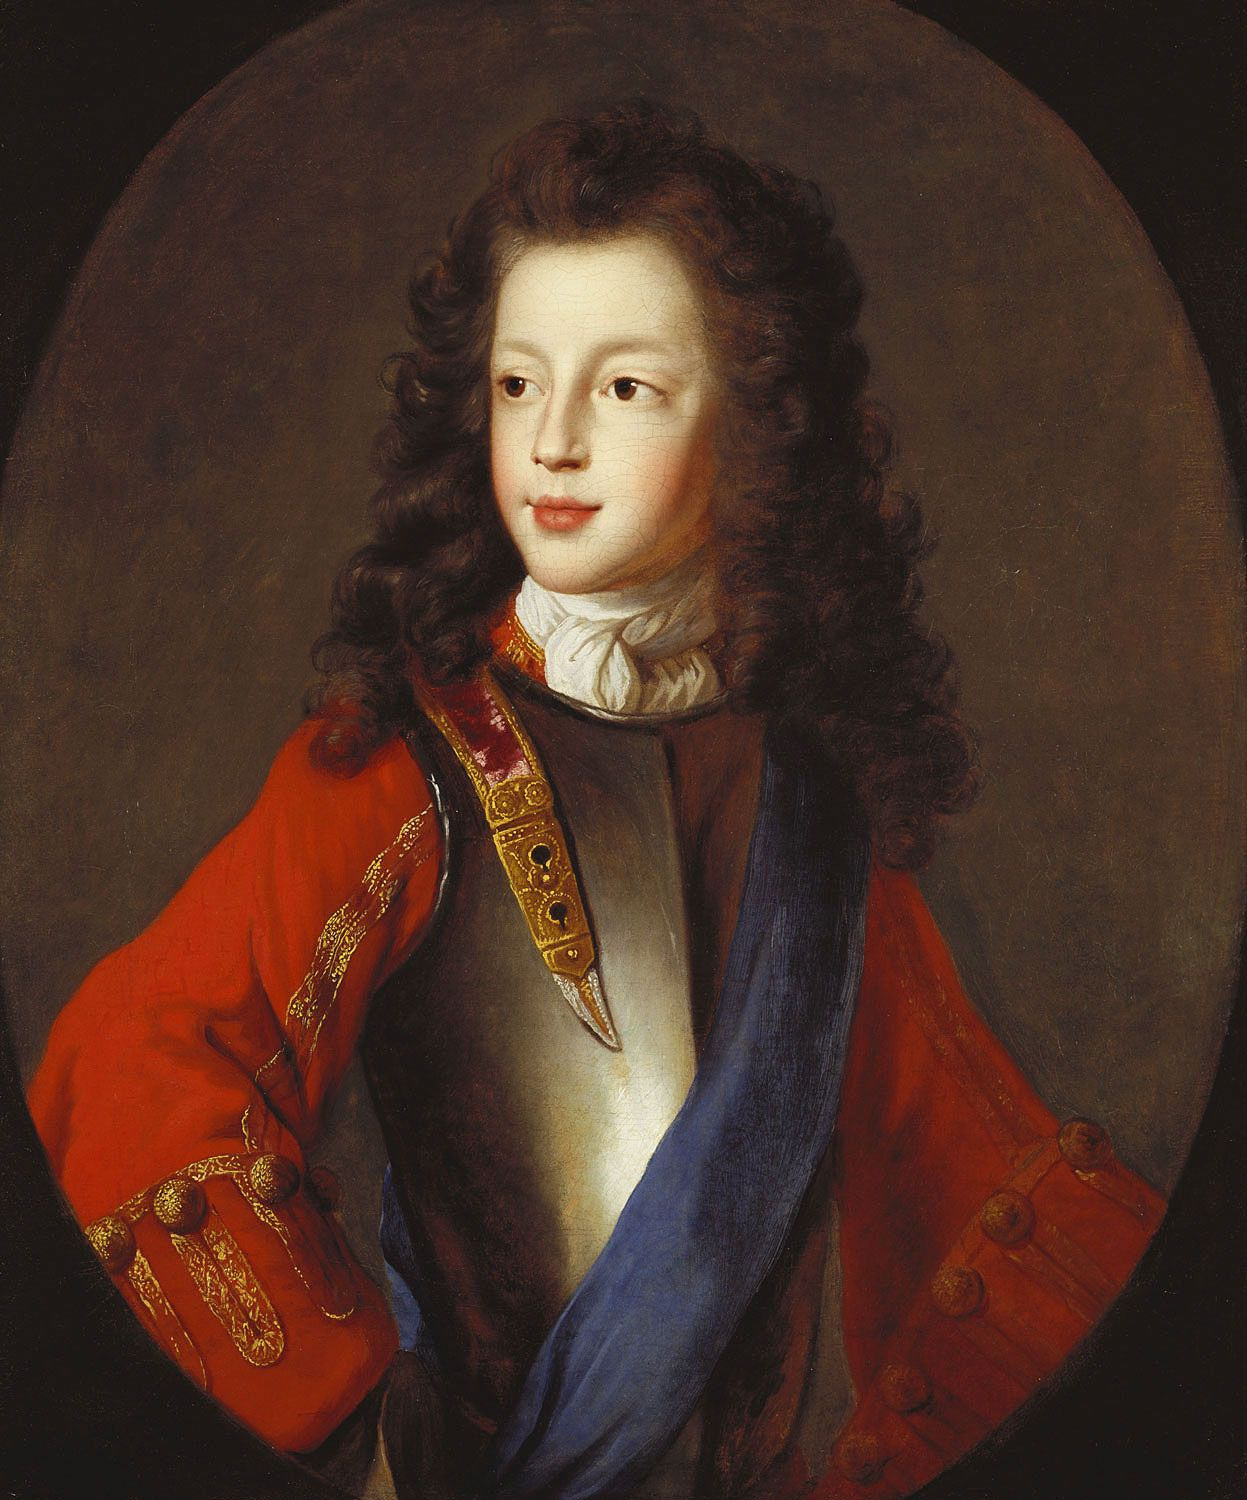 a biography of james charles stuart Mr king james name was james charles stuart he was born in june 19 of 1566 at the edinburgh castle in scotland henry stuart, lord darnley was his father and was murdered on february 10th 1567 at the hamilton's' house before james was even a year old.